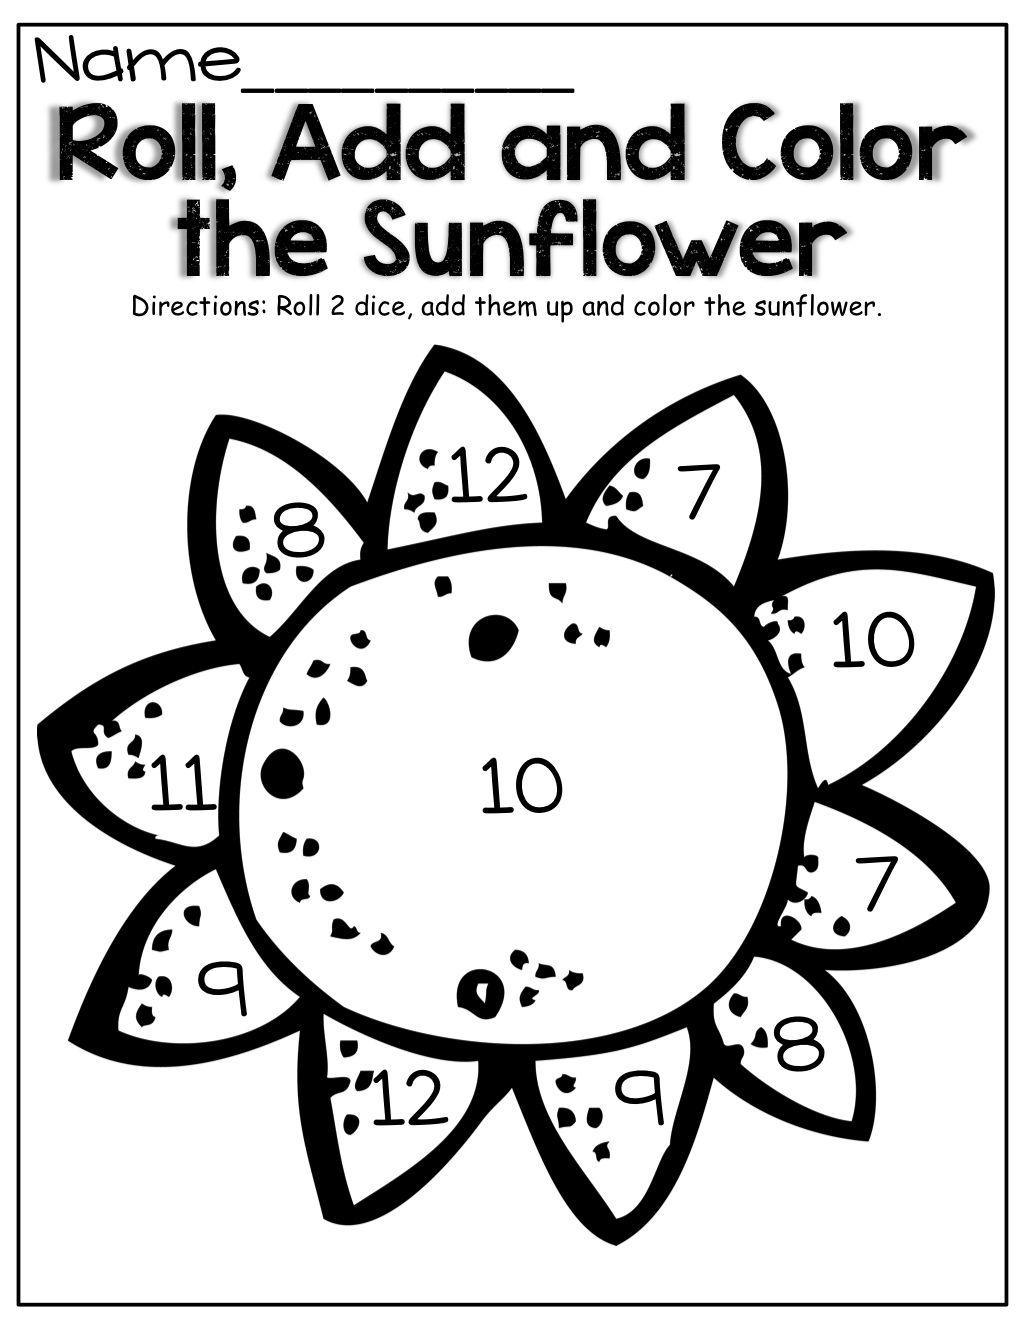 Roll 2 dice, add them up and color the sunflower! FUN way